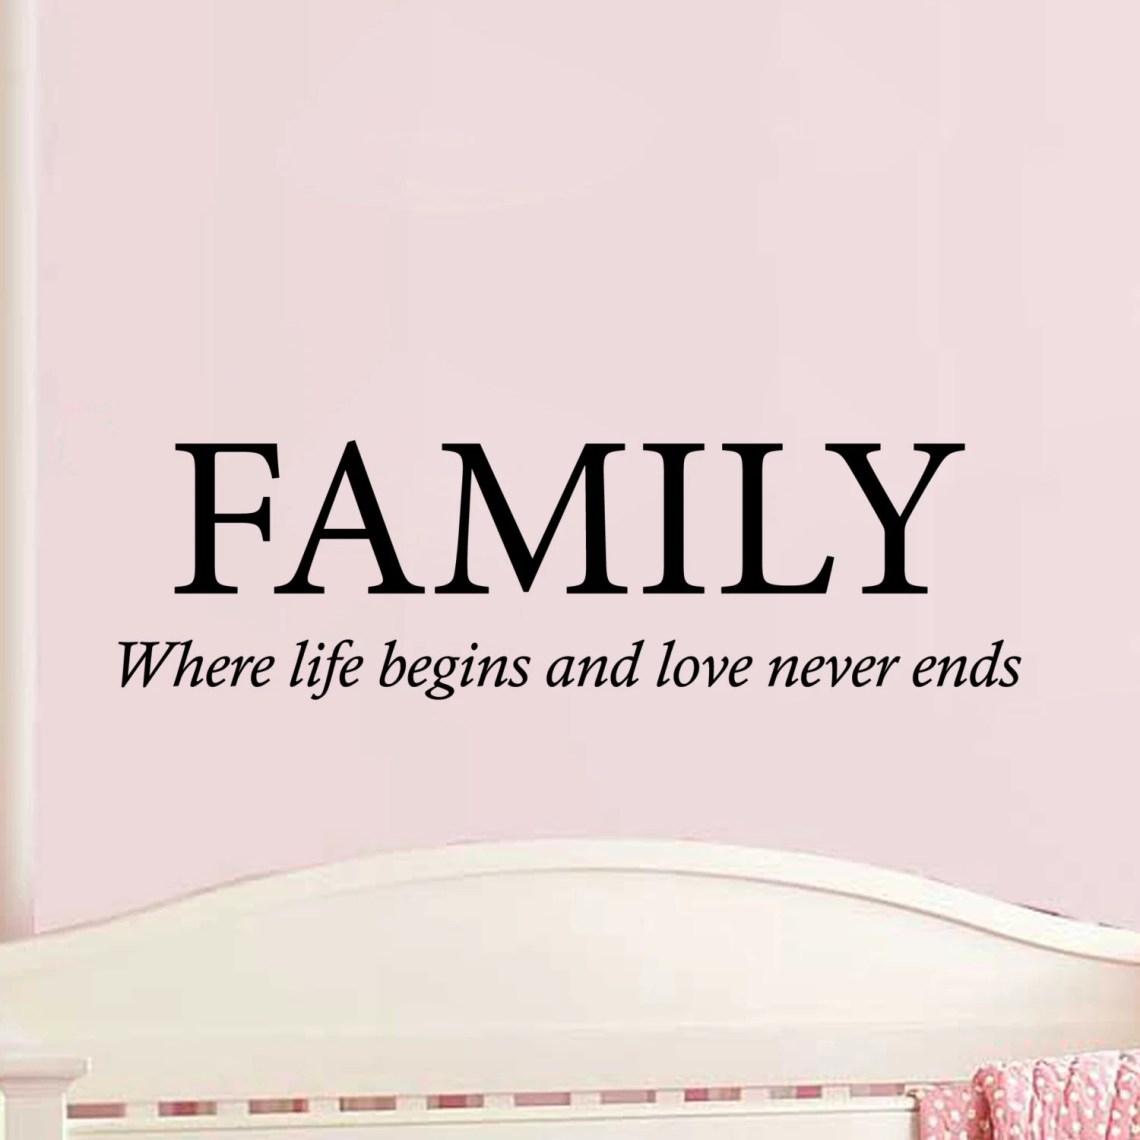 Download Family Where Life Begins and Love Never Ends Wall Vinyl